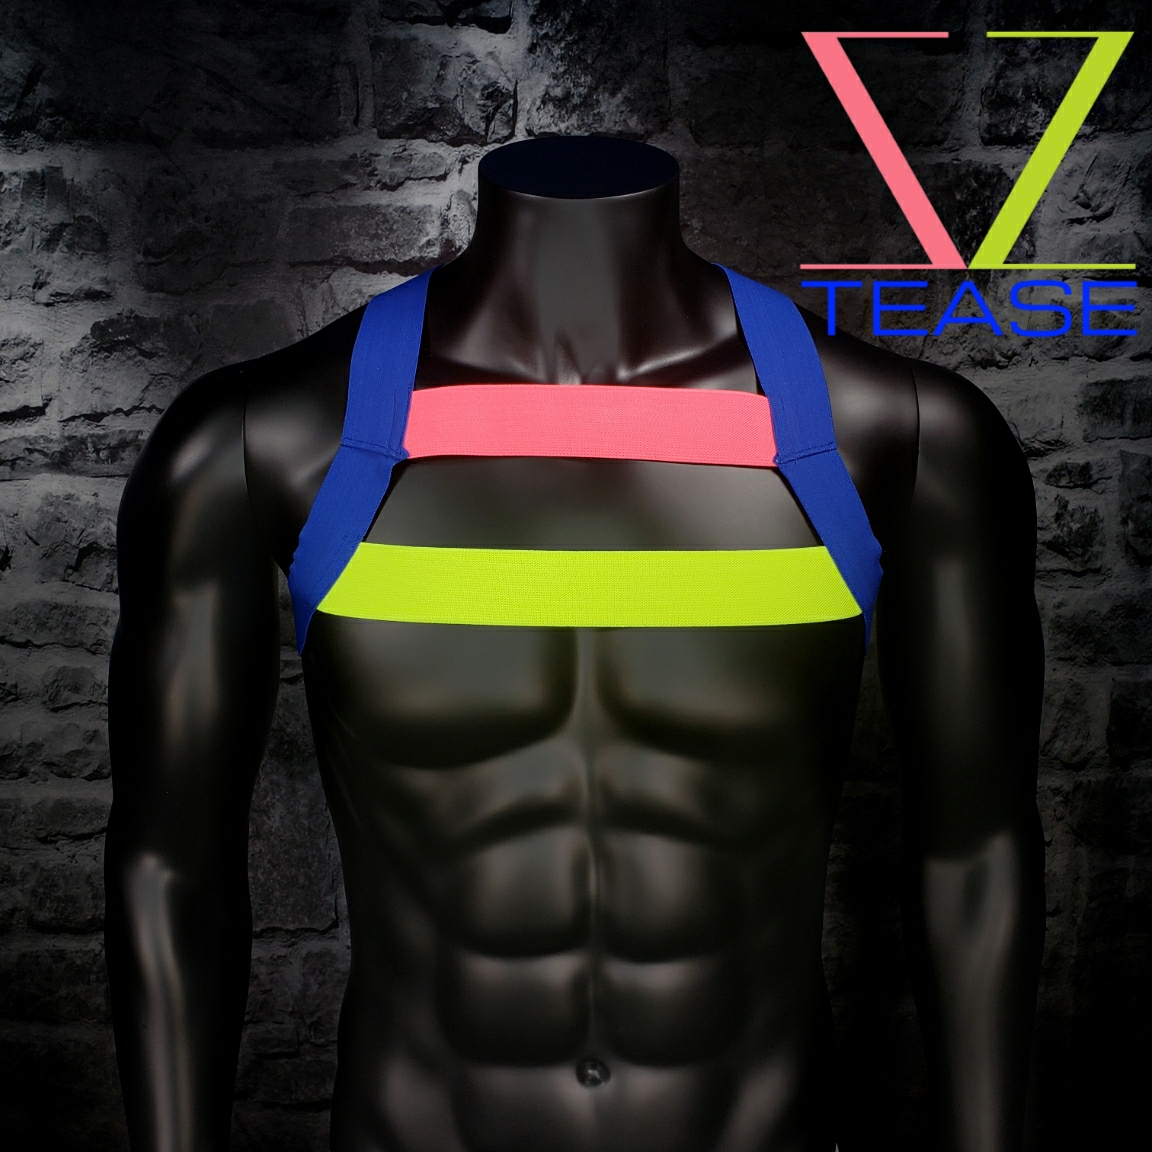 Pansexual Pride Double Strap Mens Harness